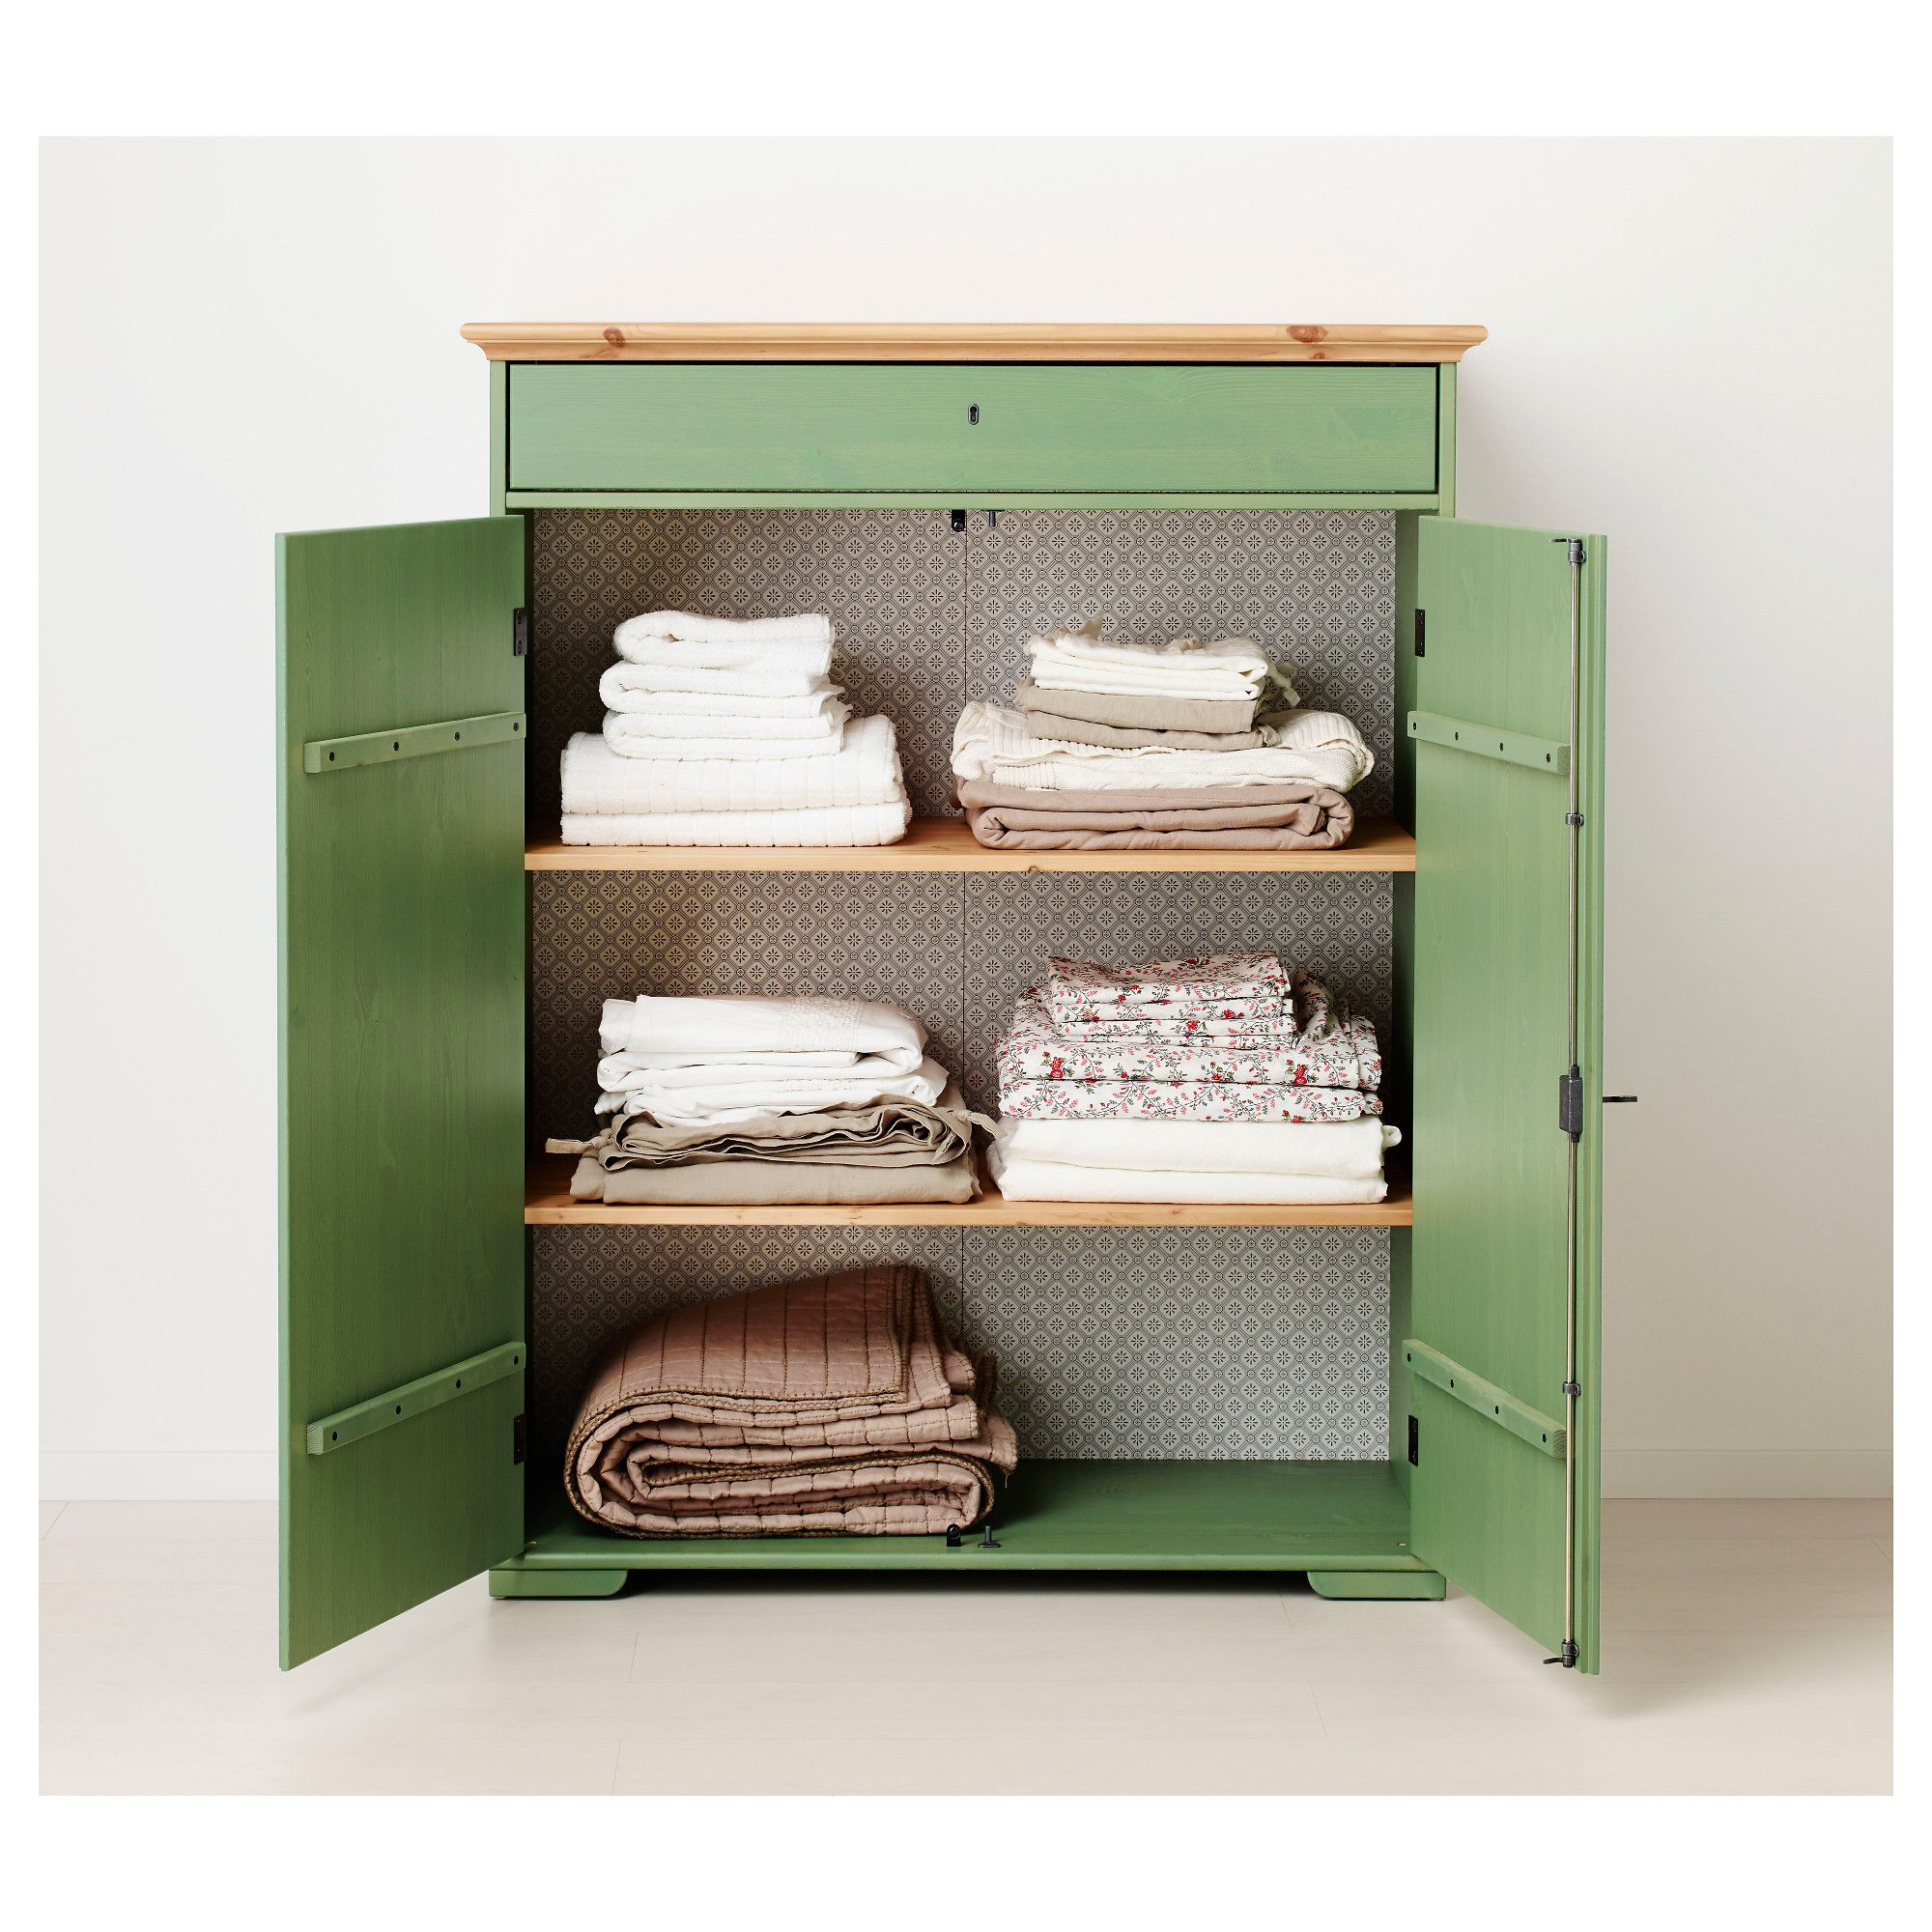 IKEA HURDAL Linen Cabinet Green Cm The Solid Pine Shows Off The Attractive  Grains And Beauty Mark Knots That Give Each Unique Piece Its Own.